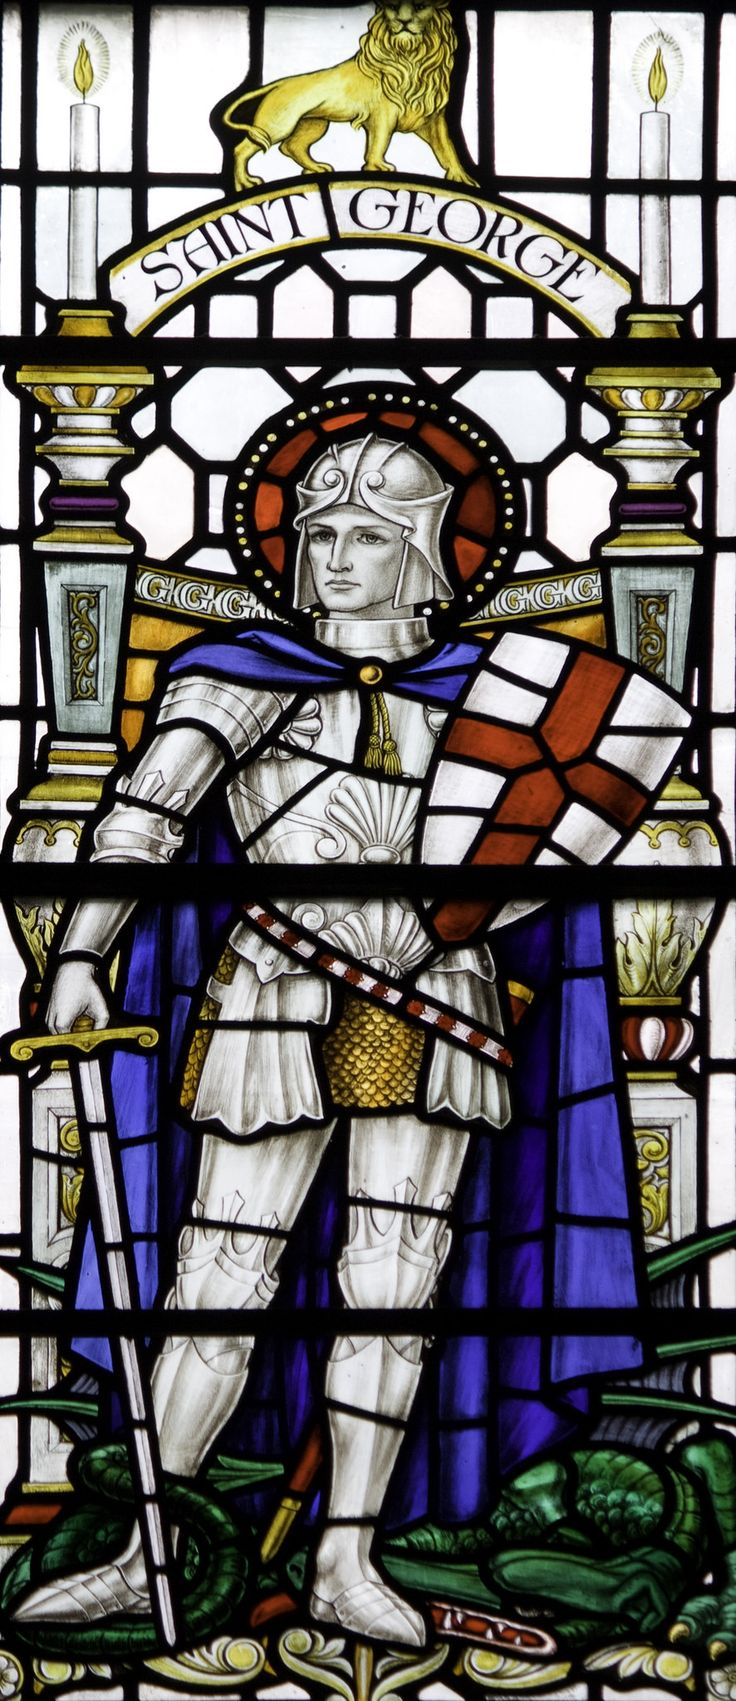 https://flic.kr/p/GtznHh   St George in Newcastle   Stained glass from the church of St John the Baptist in Newcastle.